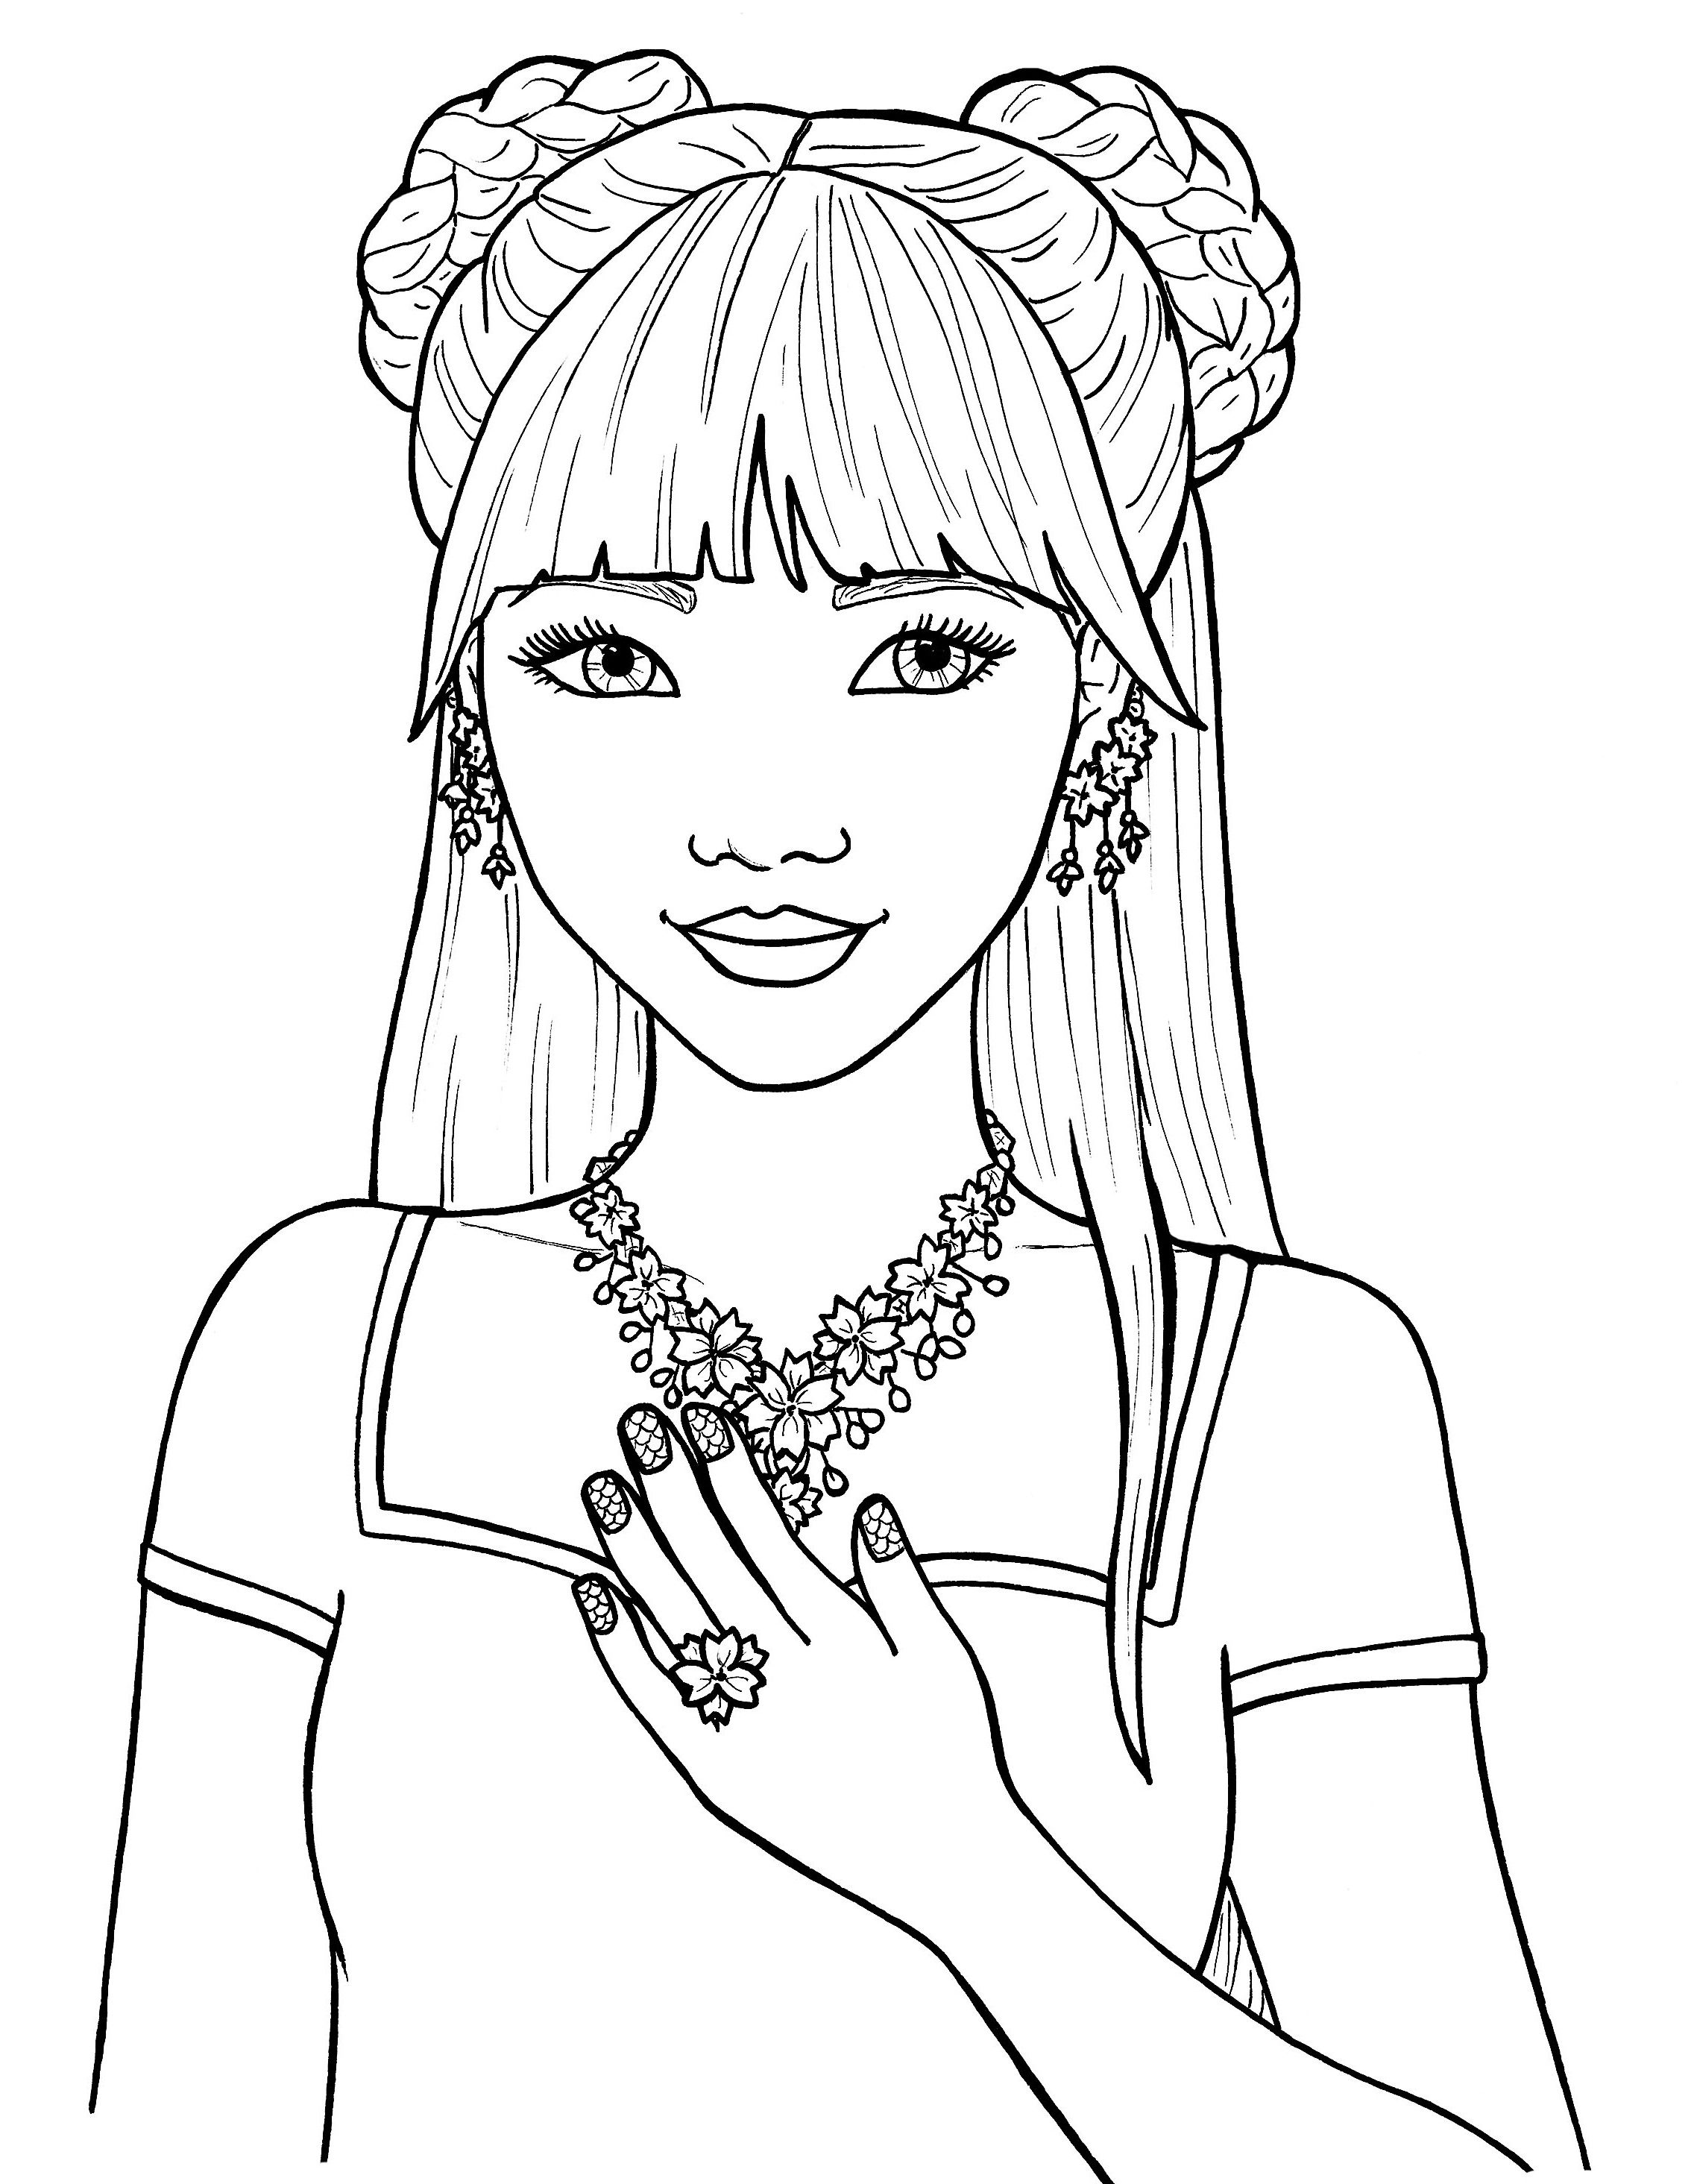 coloring for girls pretty girls coloring pages free cute coloring pages girls for coloring